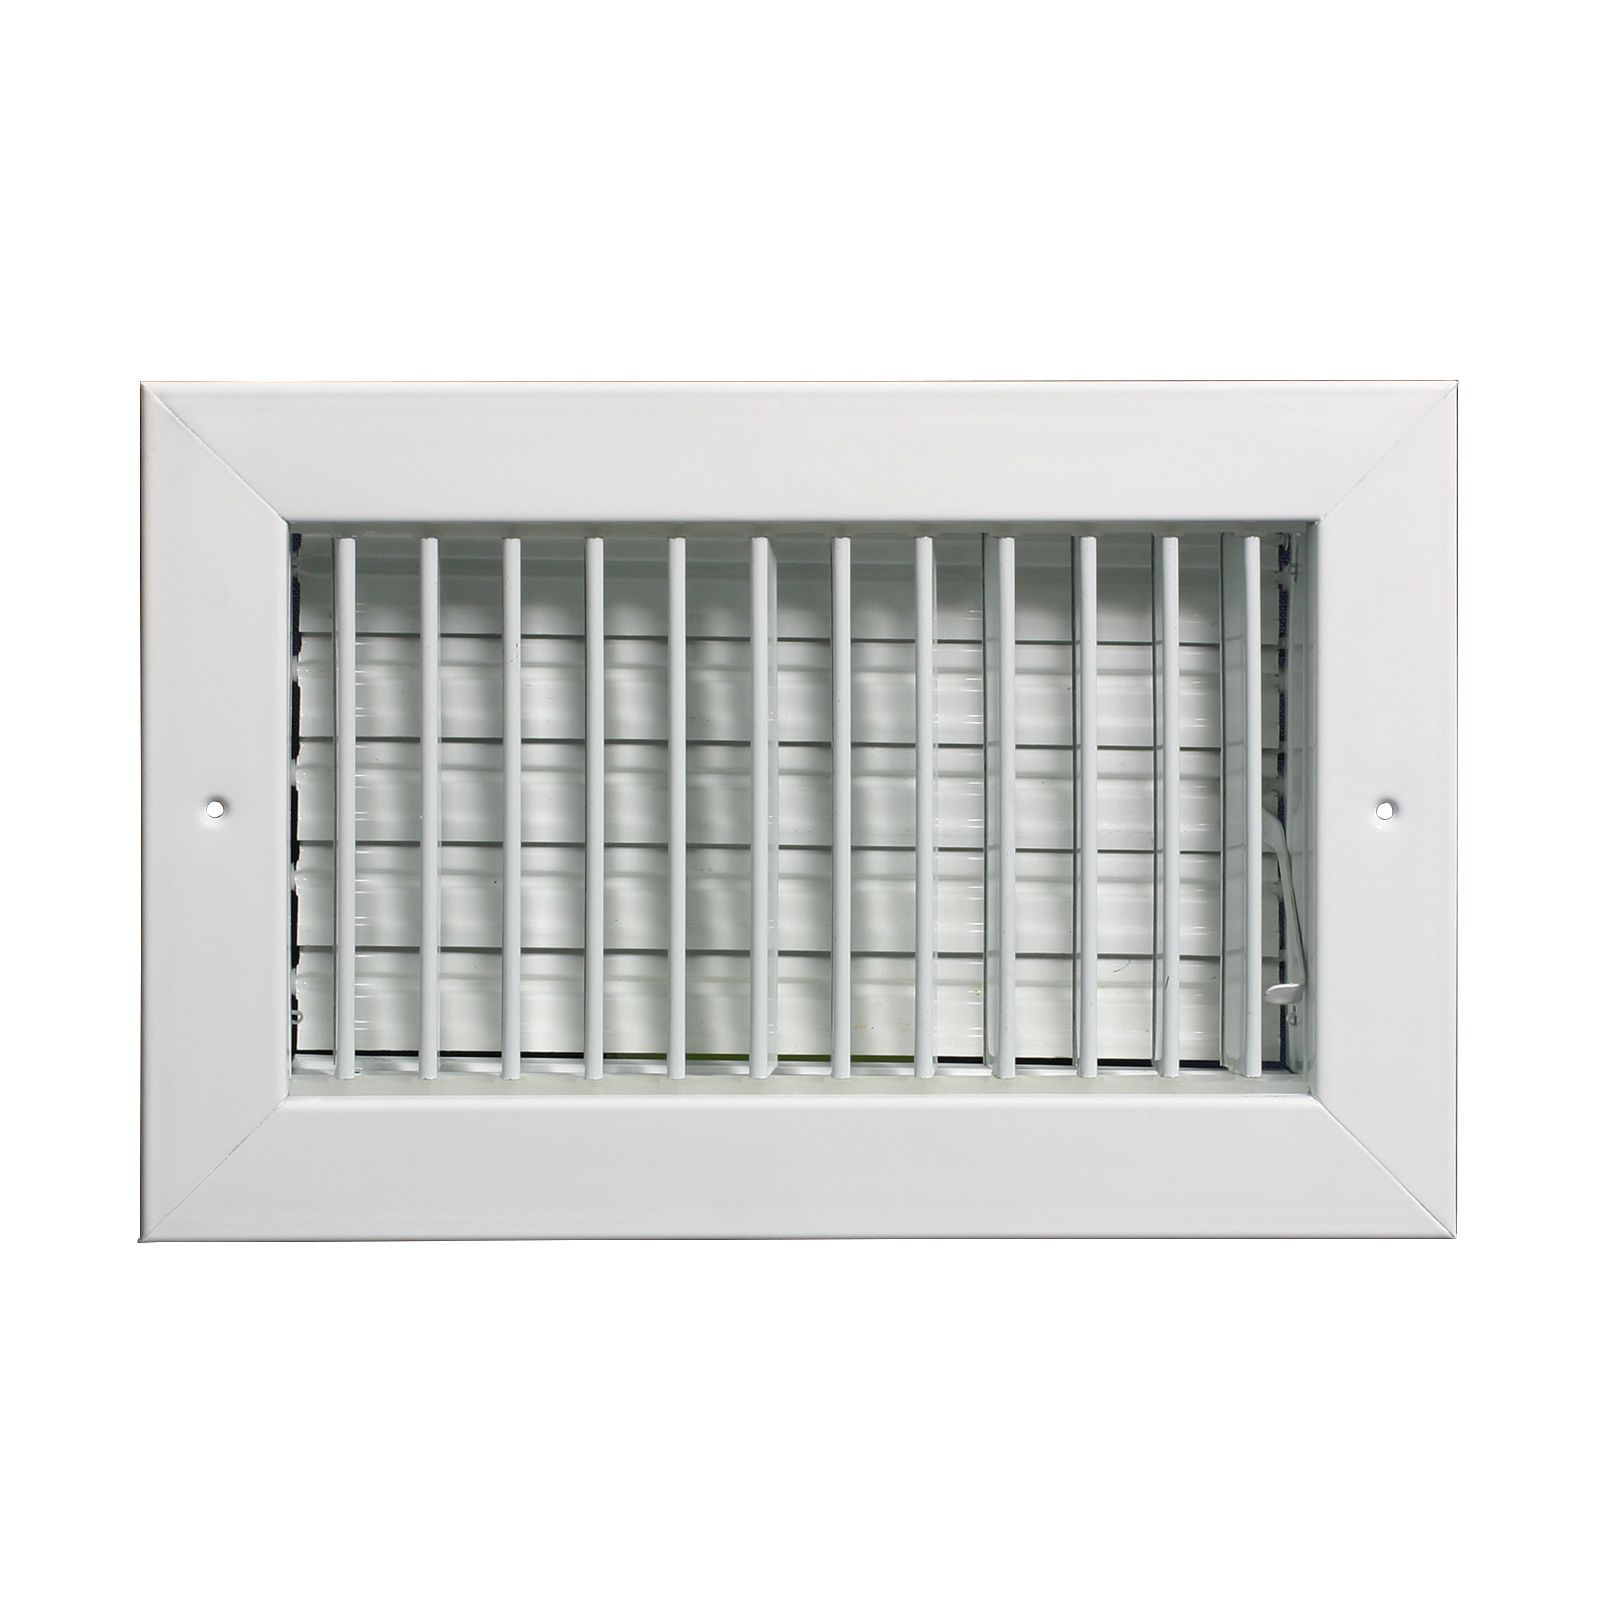 "Grille Tech VM0804 - Aluminum Vertical Blade Sidewall Register , Multi-Shutter Damper 8"" X 4"" White"